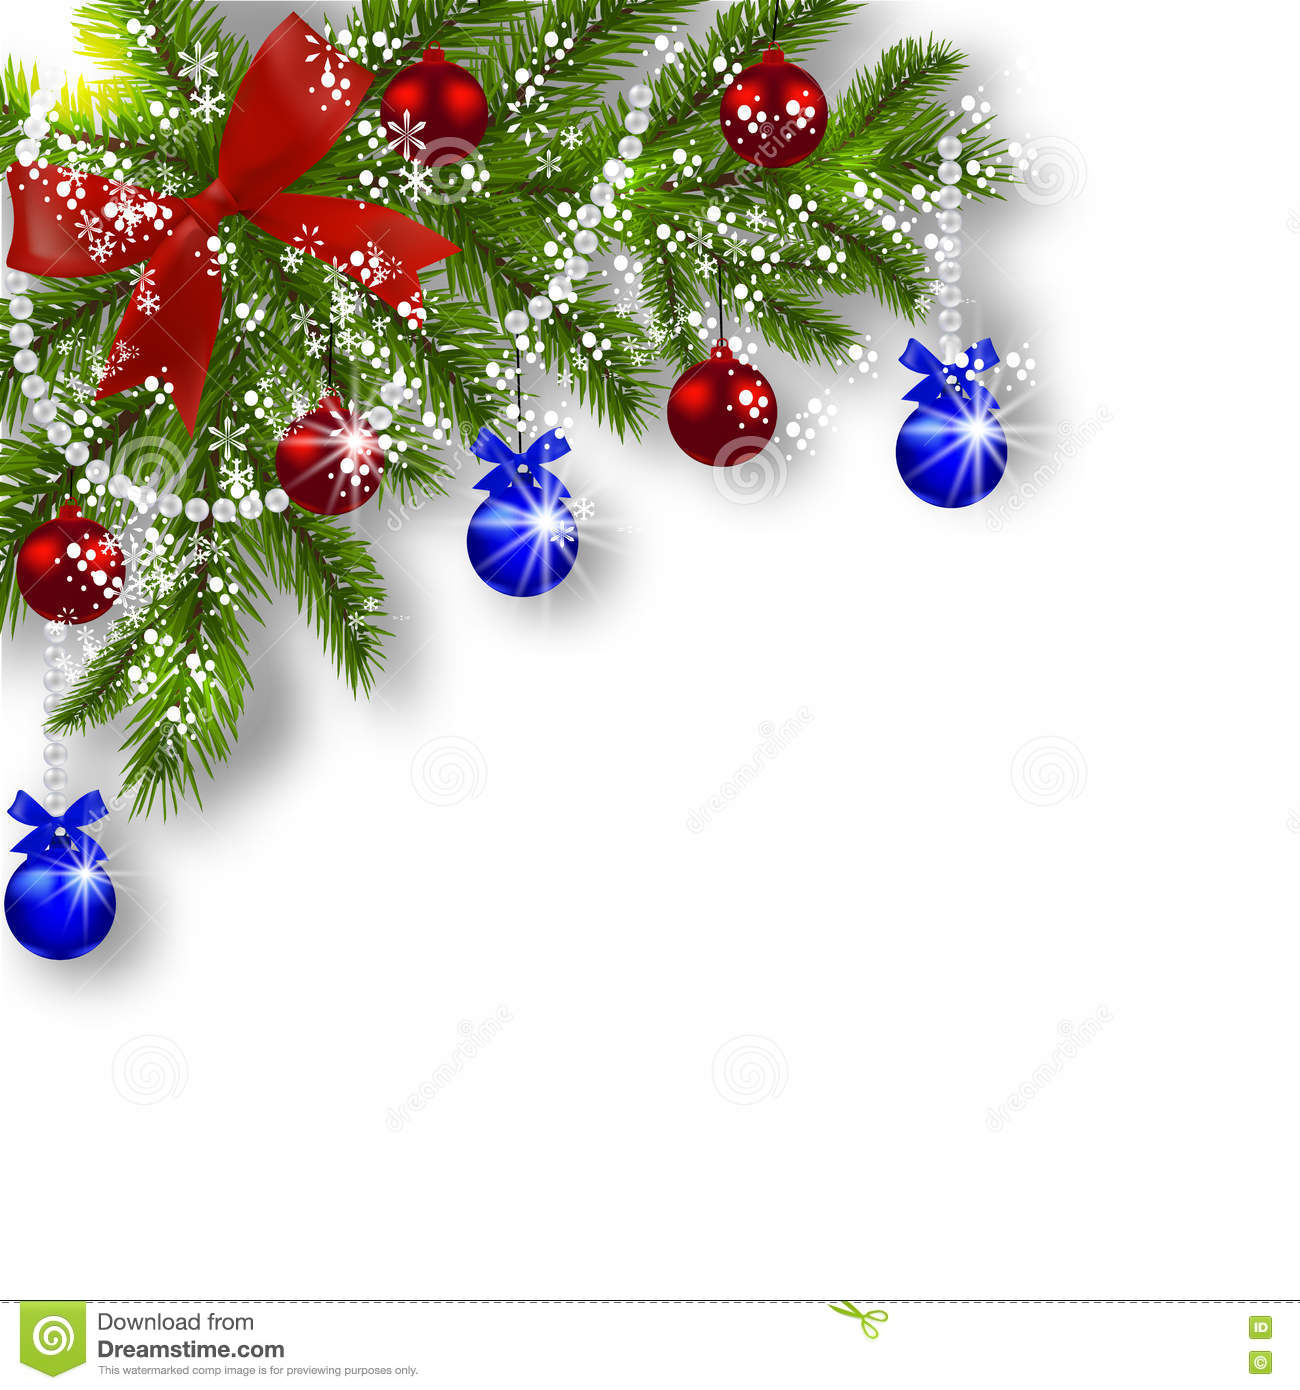 Blue And Green Christmas Tree: Christmas Card. Green Branches Of A Christmas Tree With